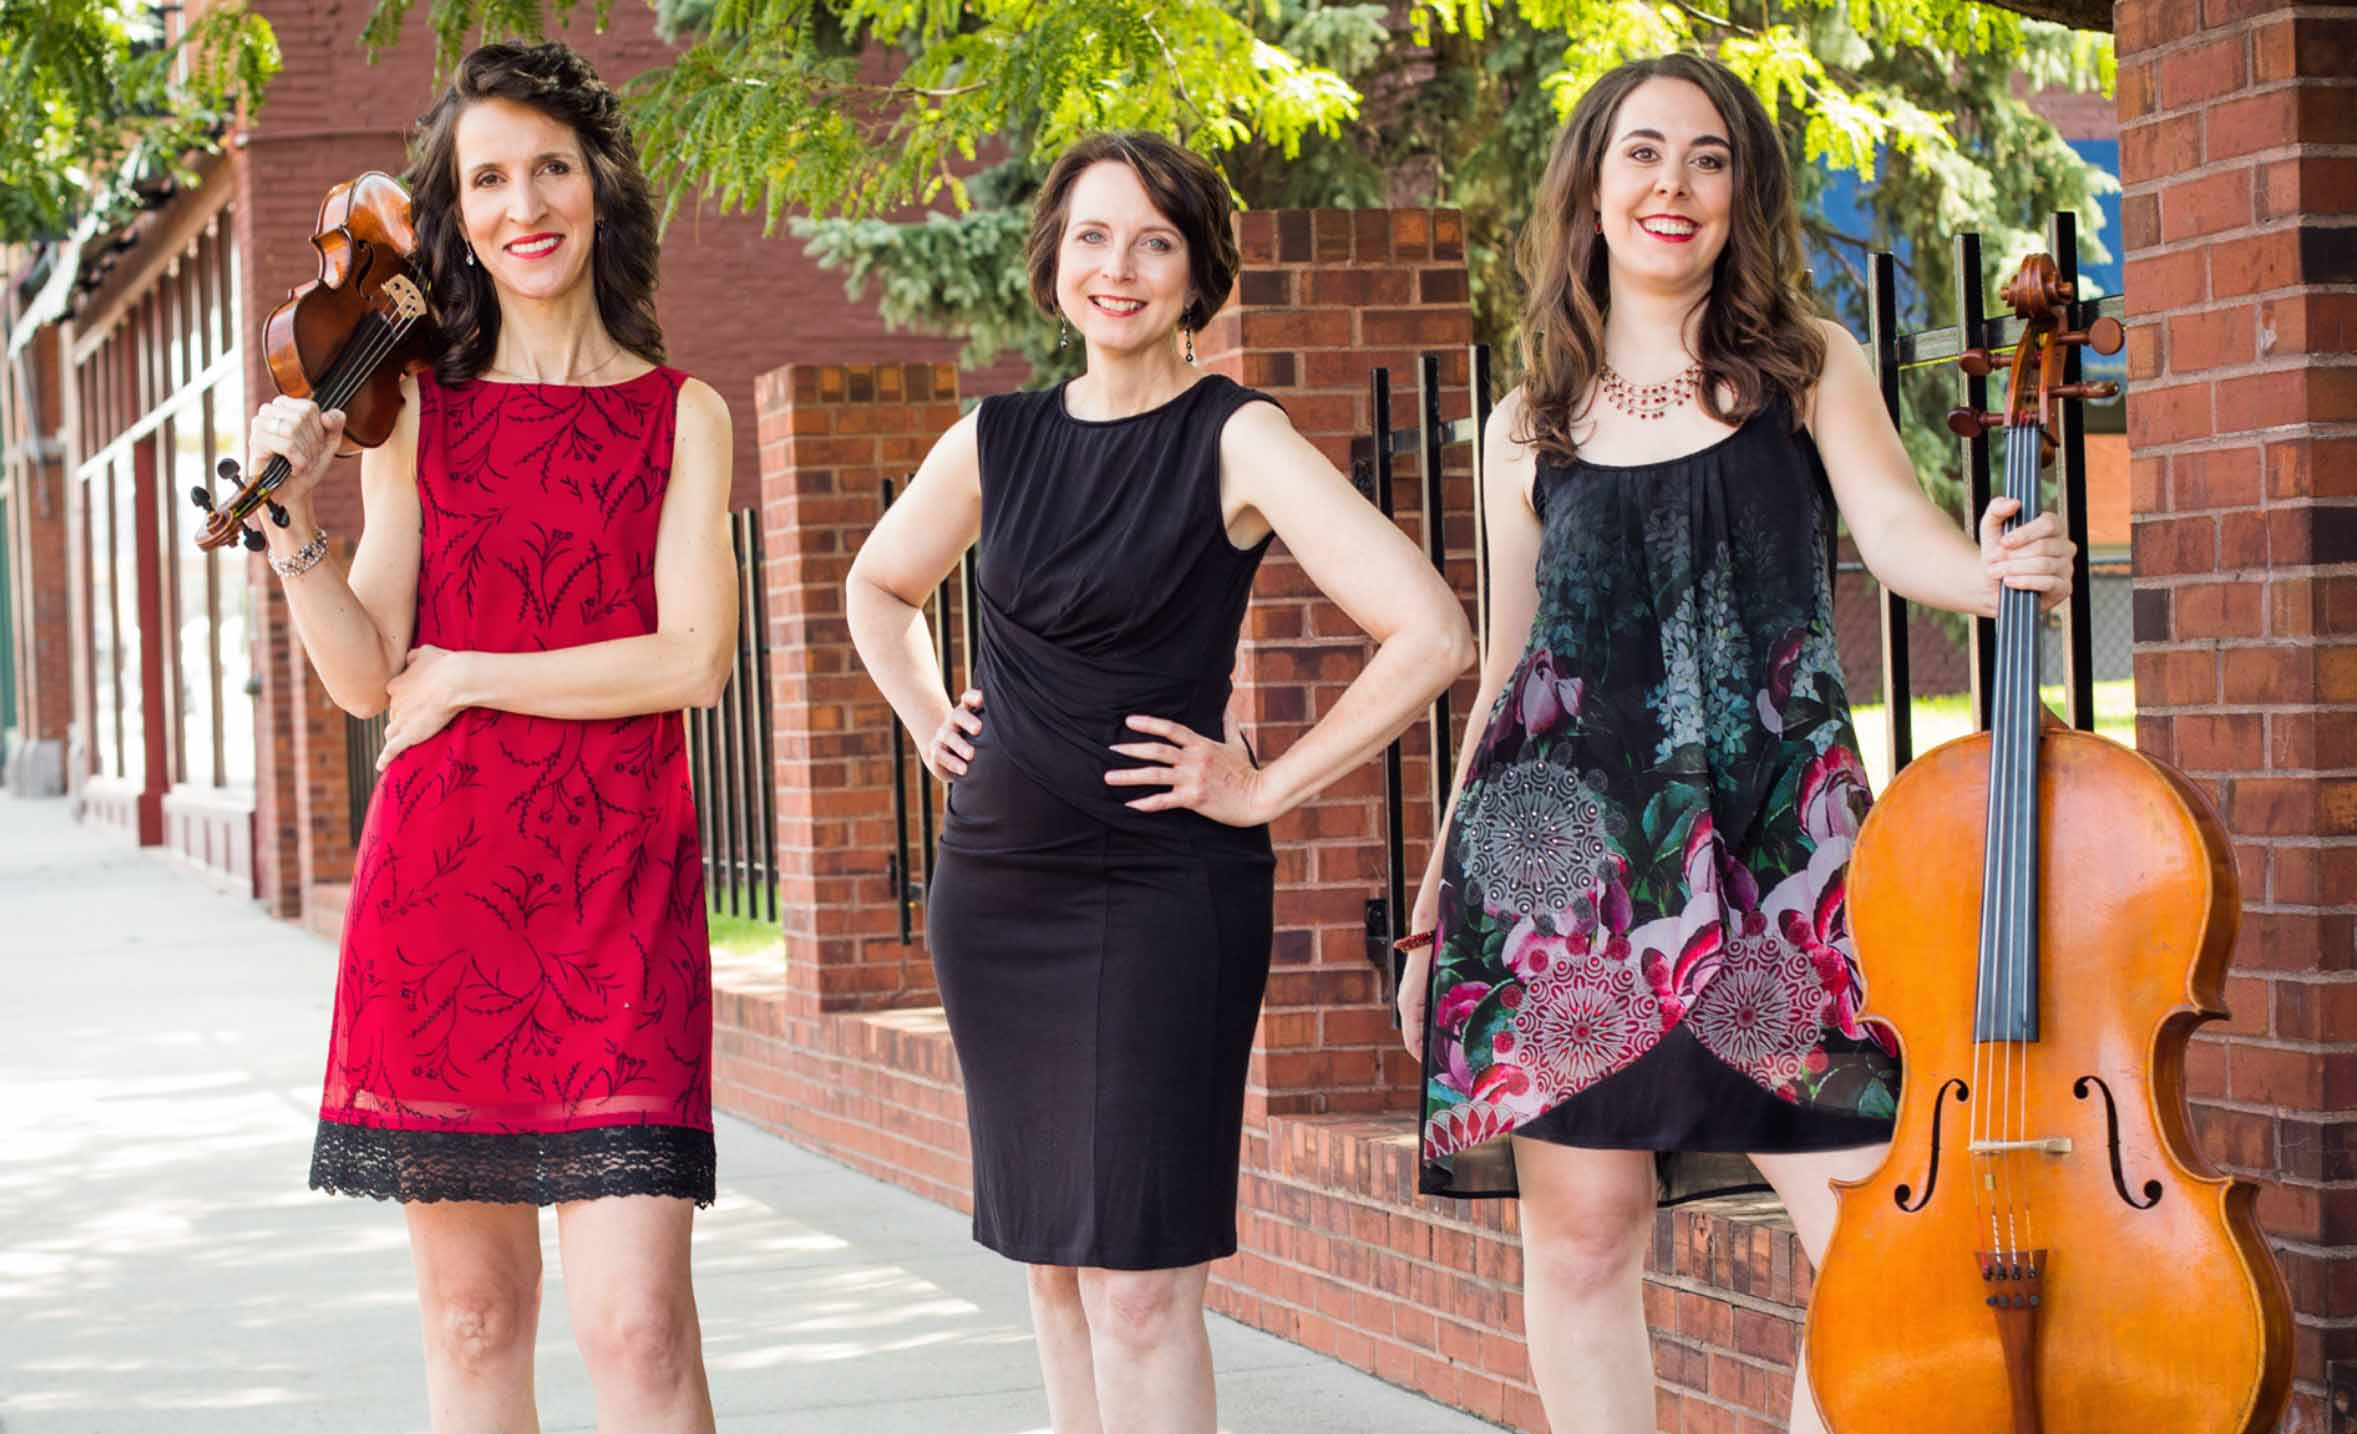 The El Camino College Center for the Arts will present a performance by the Rawlins Piano Trio at 7:30 p.m. Feb. 27 in the Campus Theatre.